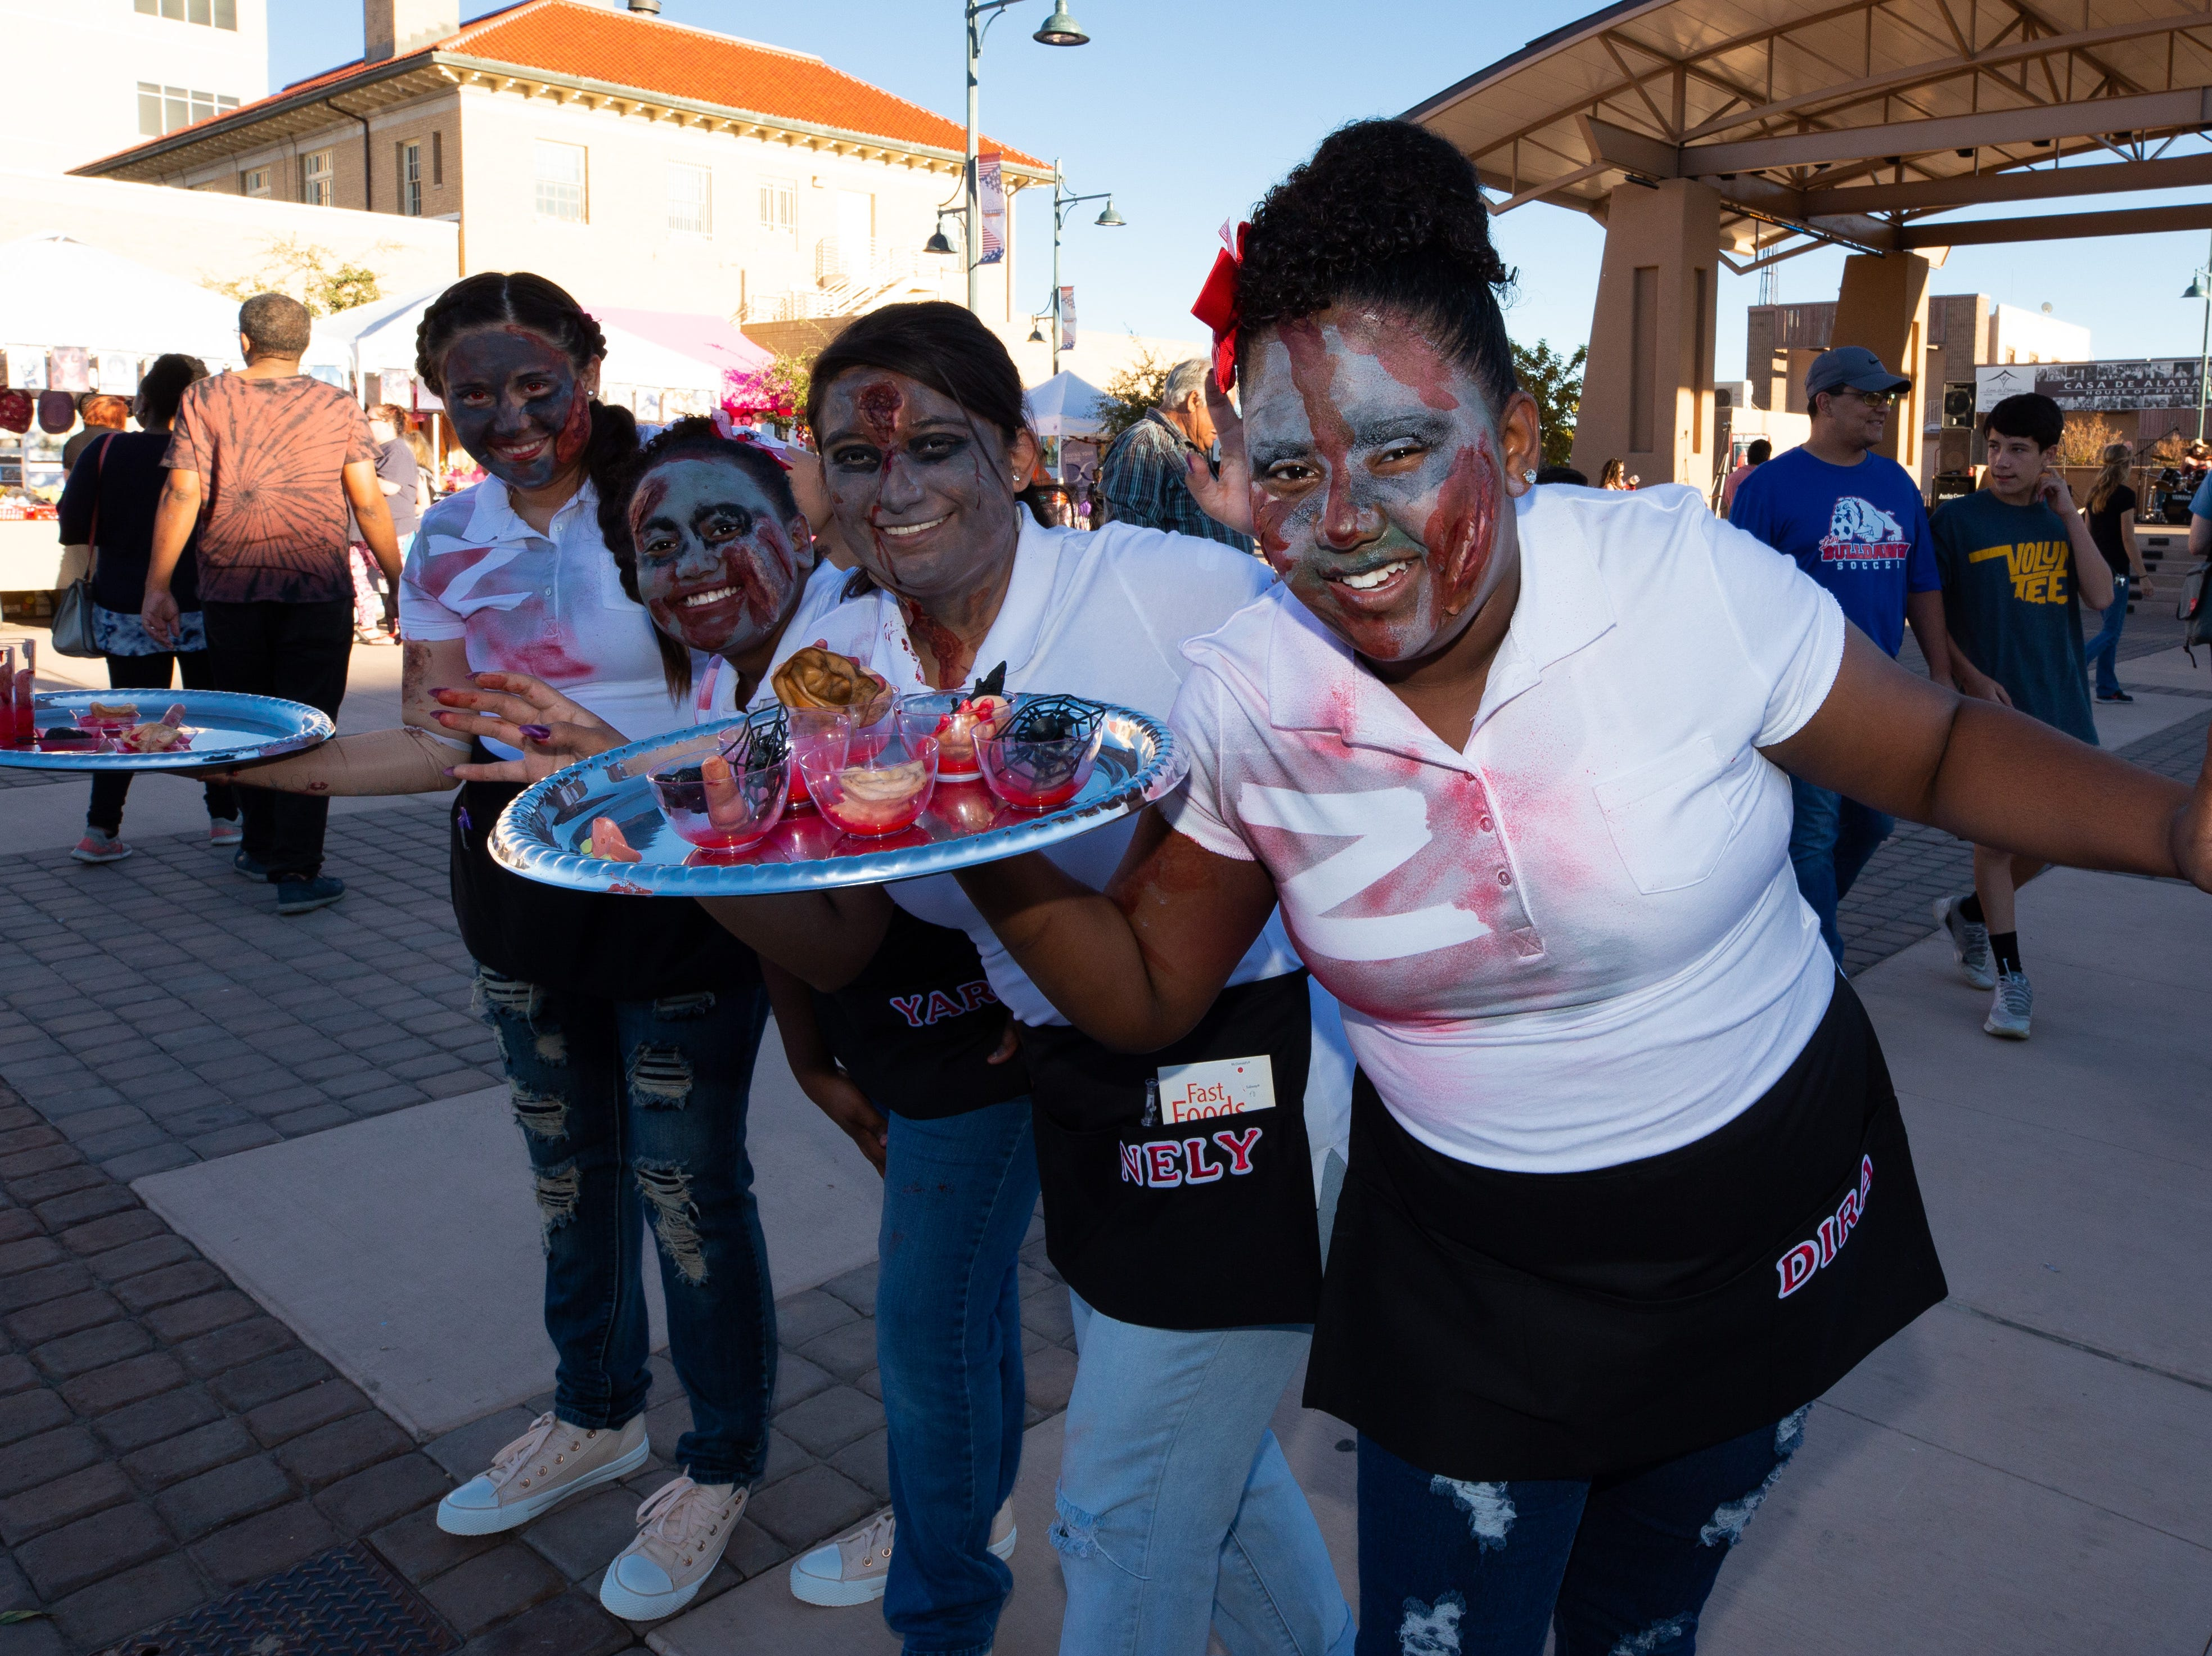 The zombie waitresses from Zombie Nation at the at the 2018 Zombie Walk held on Saturday, Oct. 27, 2018. From left: Yari Lujan, Yeneli Lujan, Yareli Strong, 9, and Yadira Strong, 10.